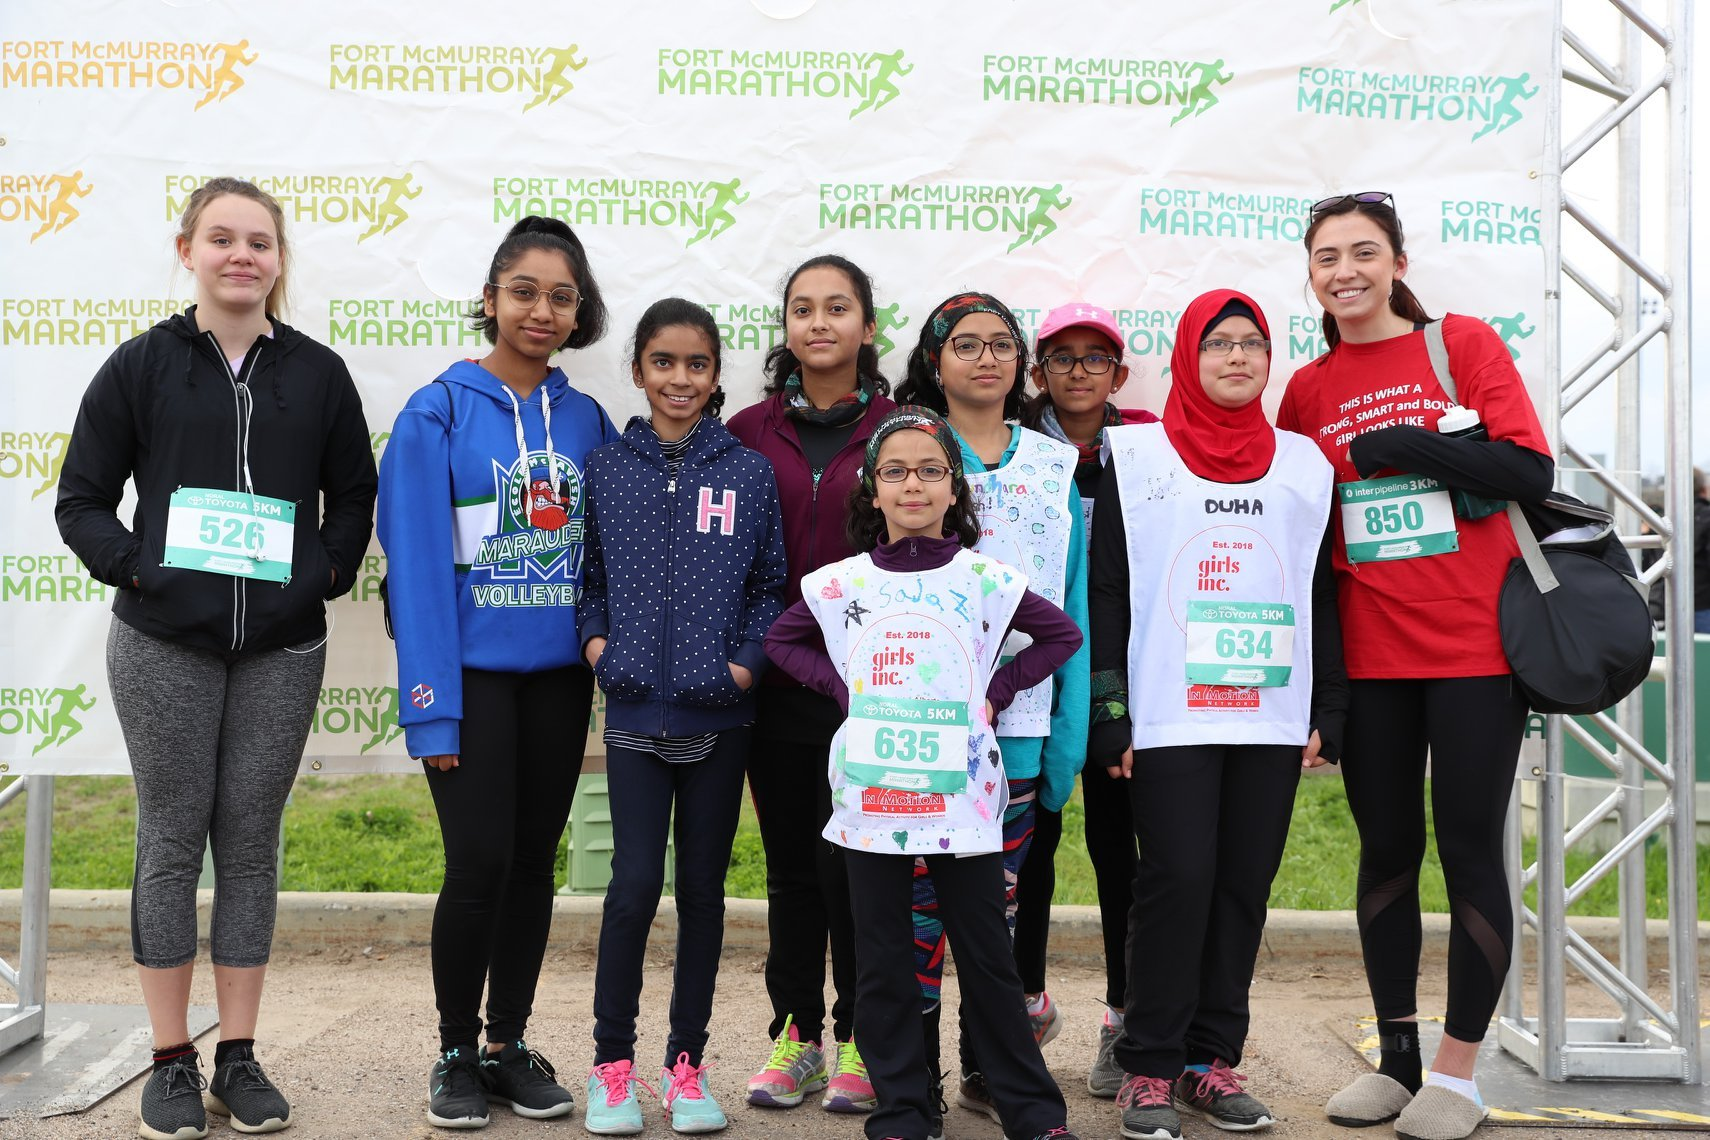 Girls Inc of Northern Alberta Run Club participate in Fort McMurray Marathon 2019